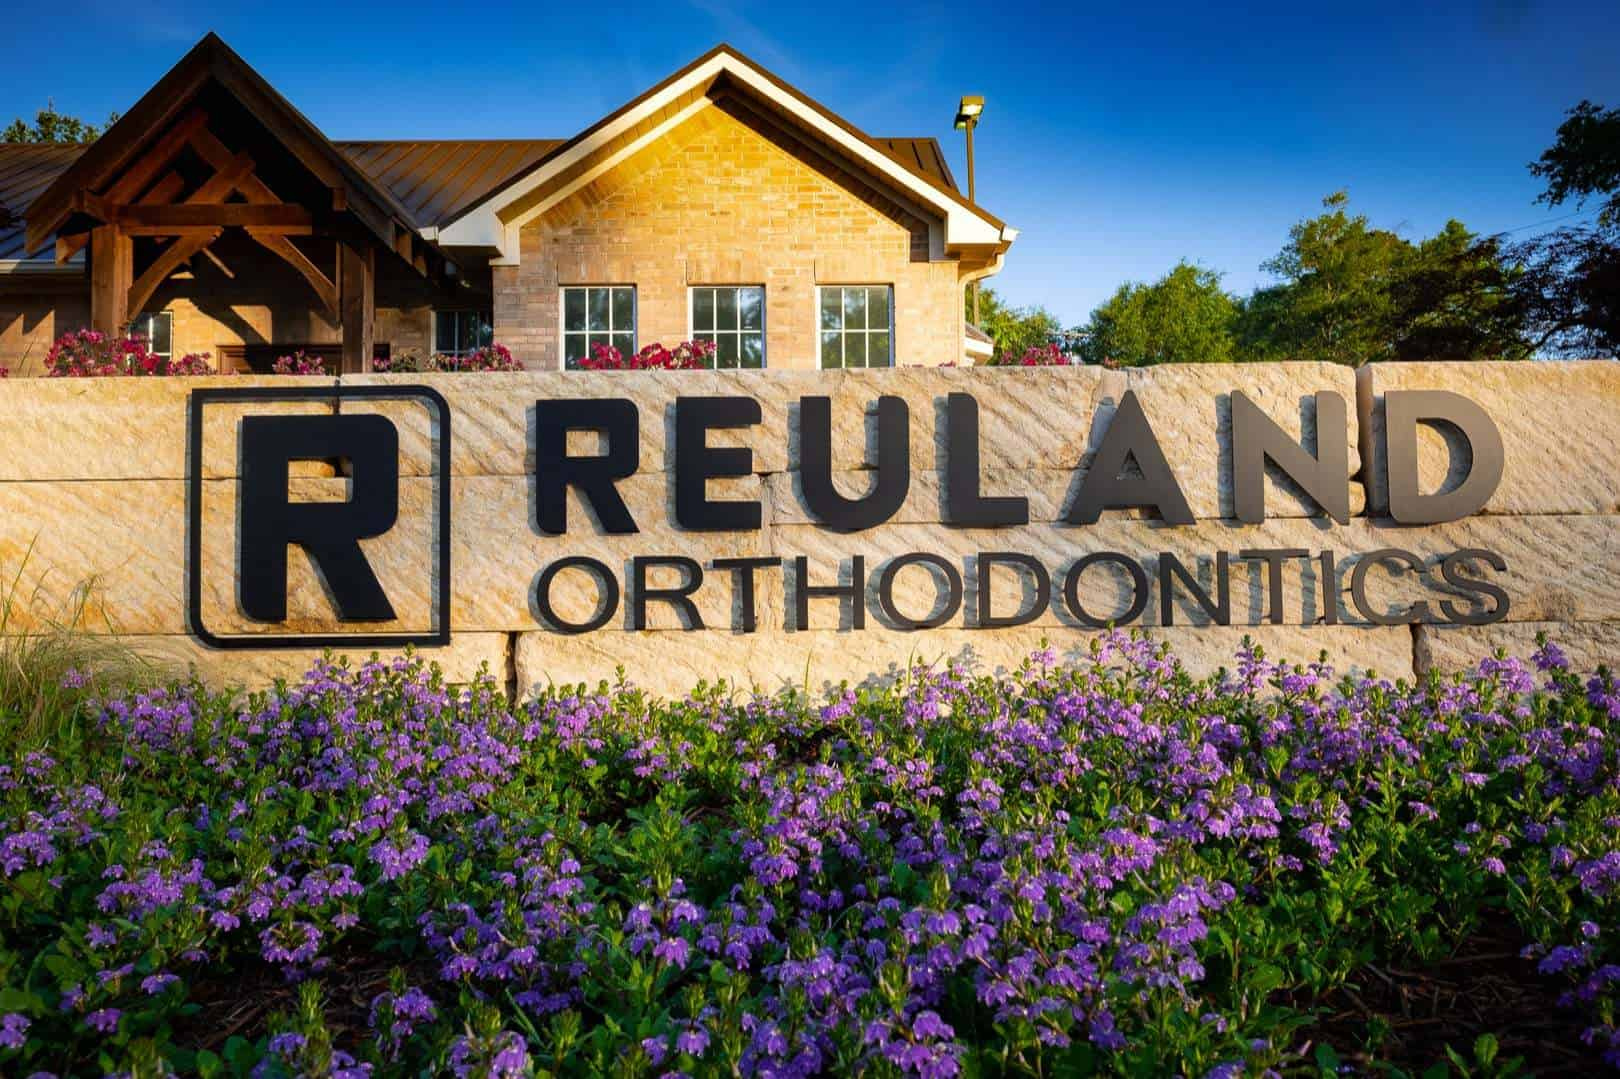 Reuland Orthodontics Exteriors 2018 4 1 - BIG NEWS: Dr. Barnhart Joins the Reuland Orthodontics Team Today!